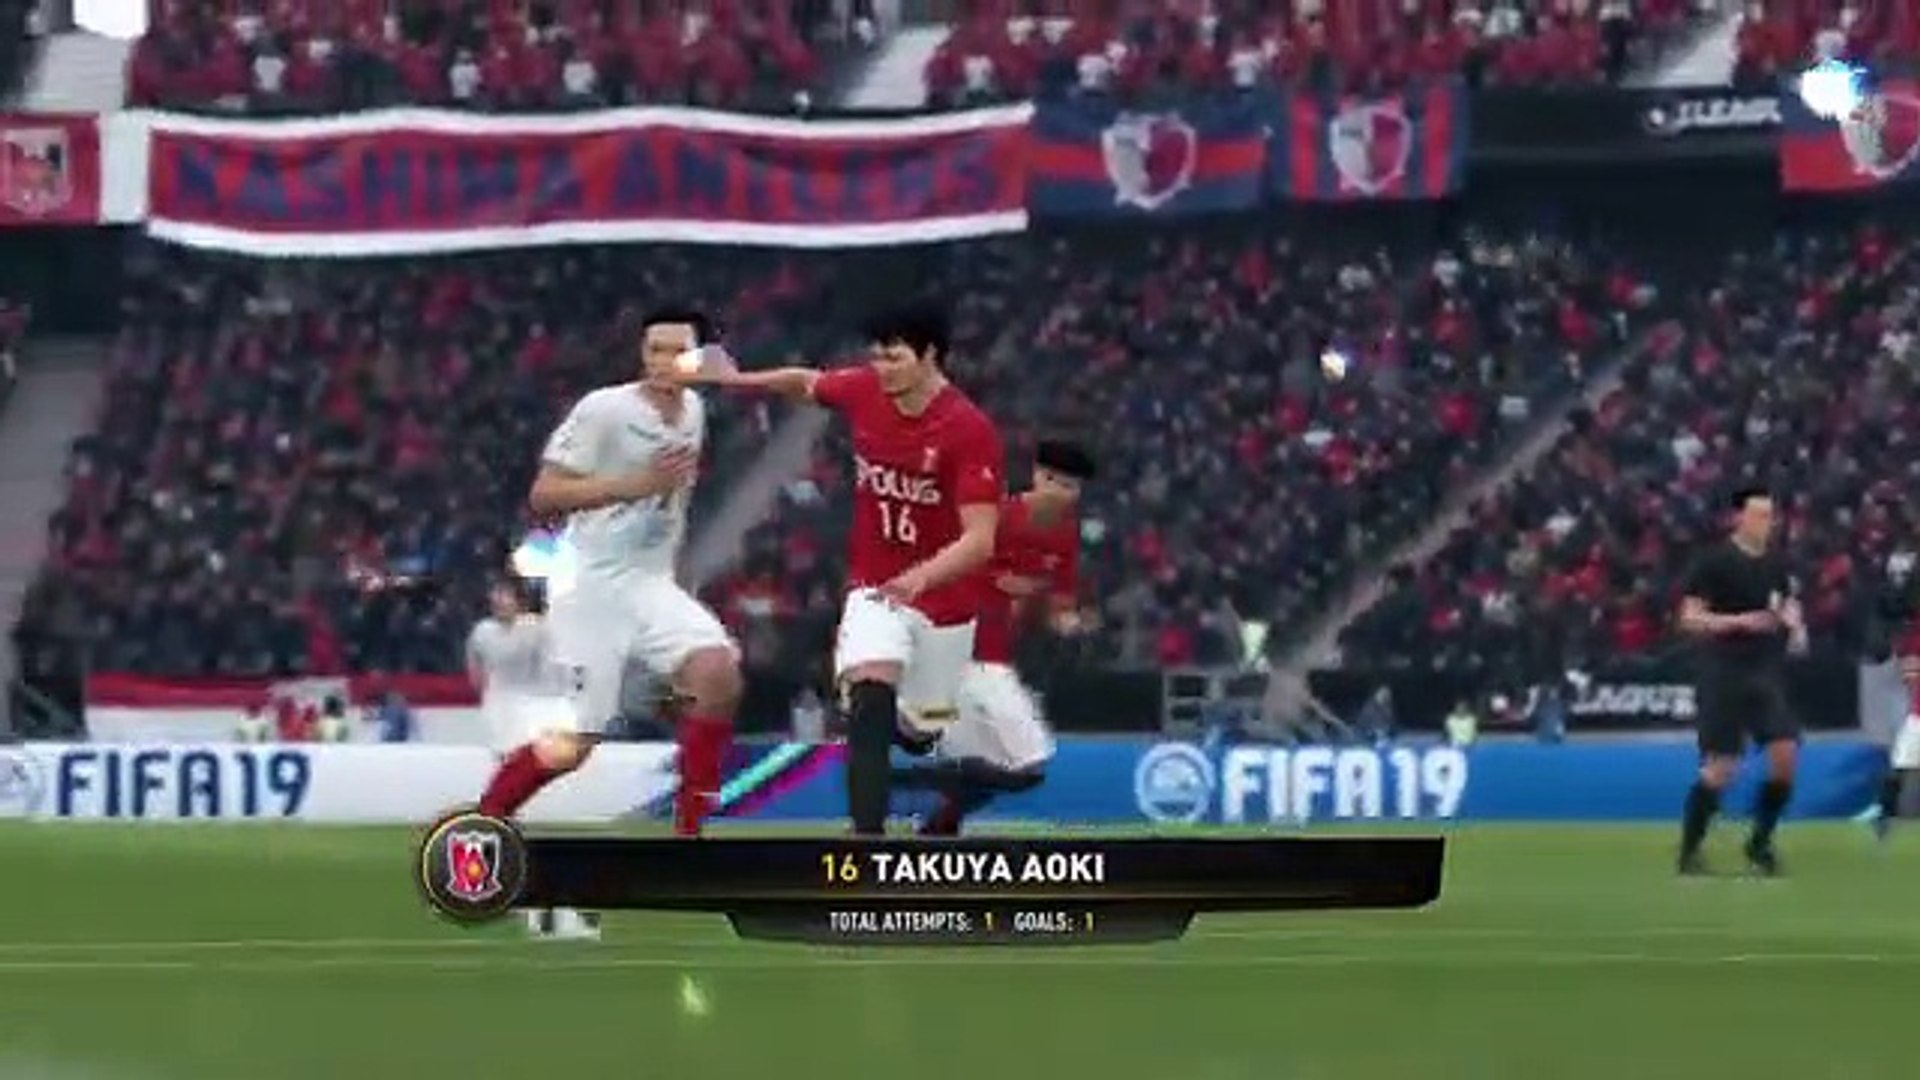 Japanese Emperor S Cup Kashima Antlers Urawa Red Diamonds Fifa 19 Simulation Full Game 5 12 18 Video Dailymotion